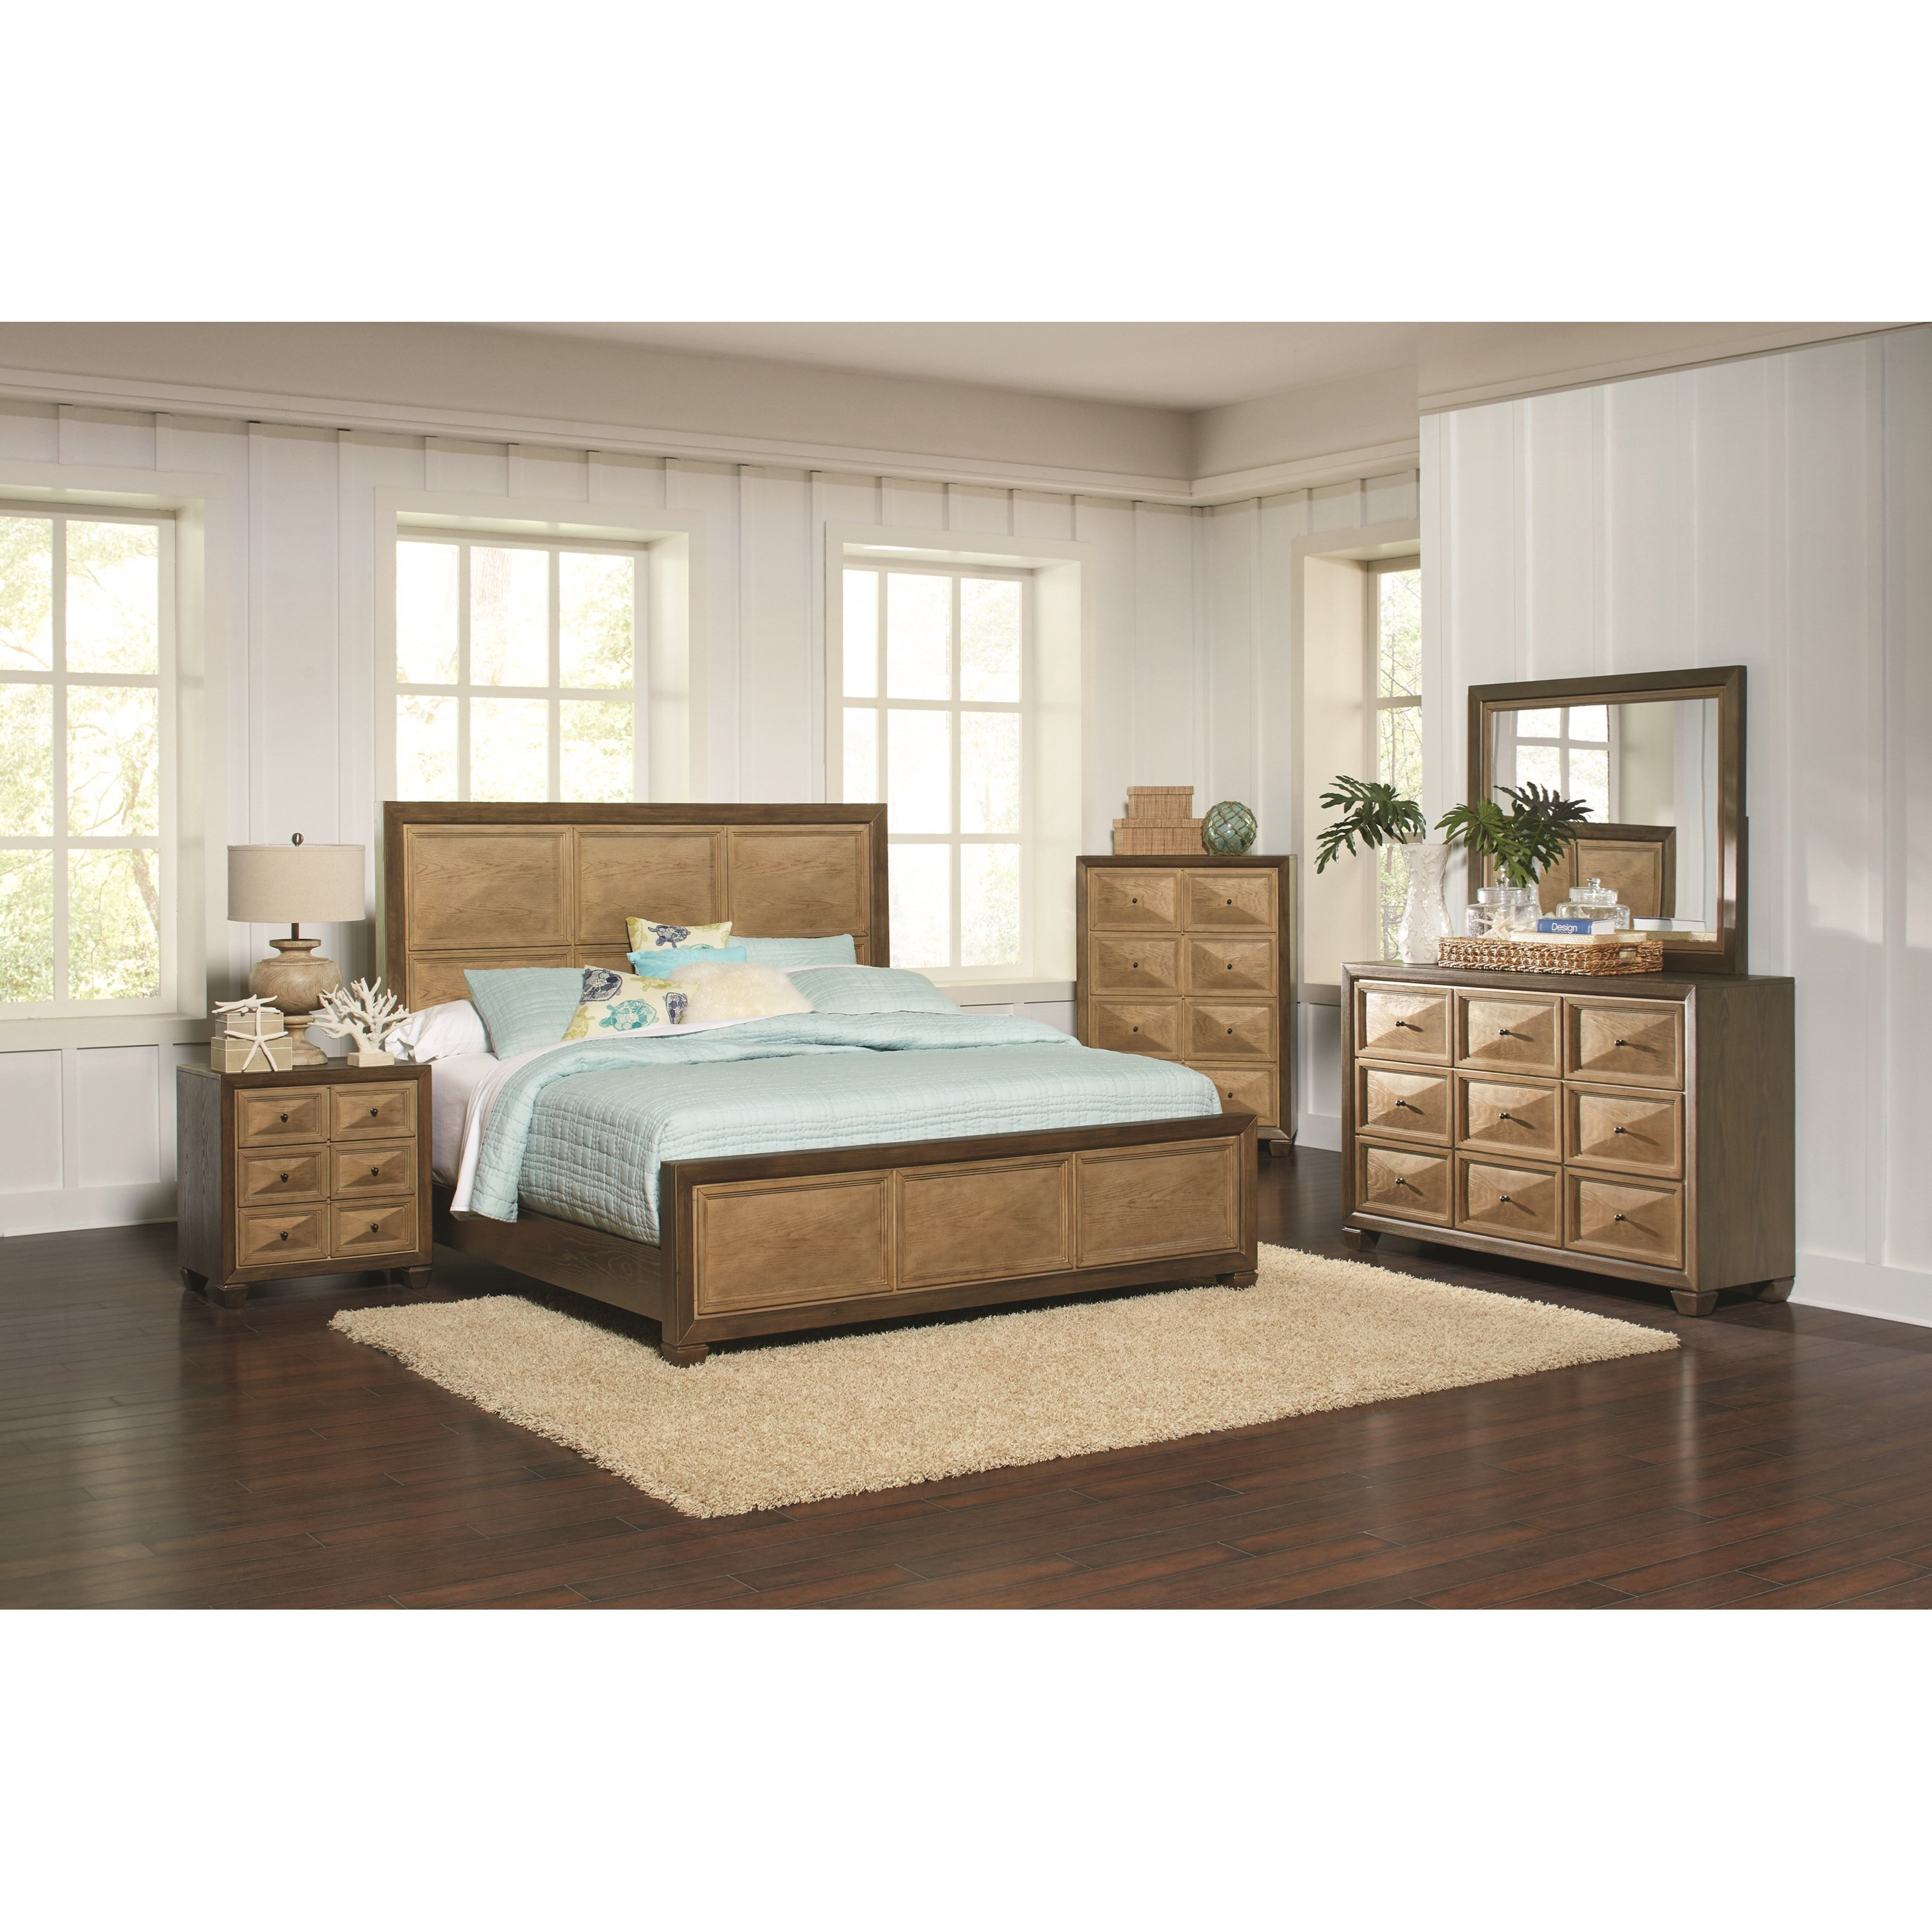 Coaster Wheatland King Bedroom Group - Item Number: 204600 K Bedroom Group 1